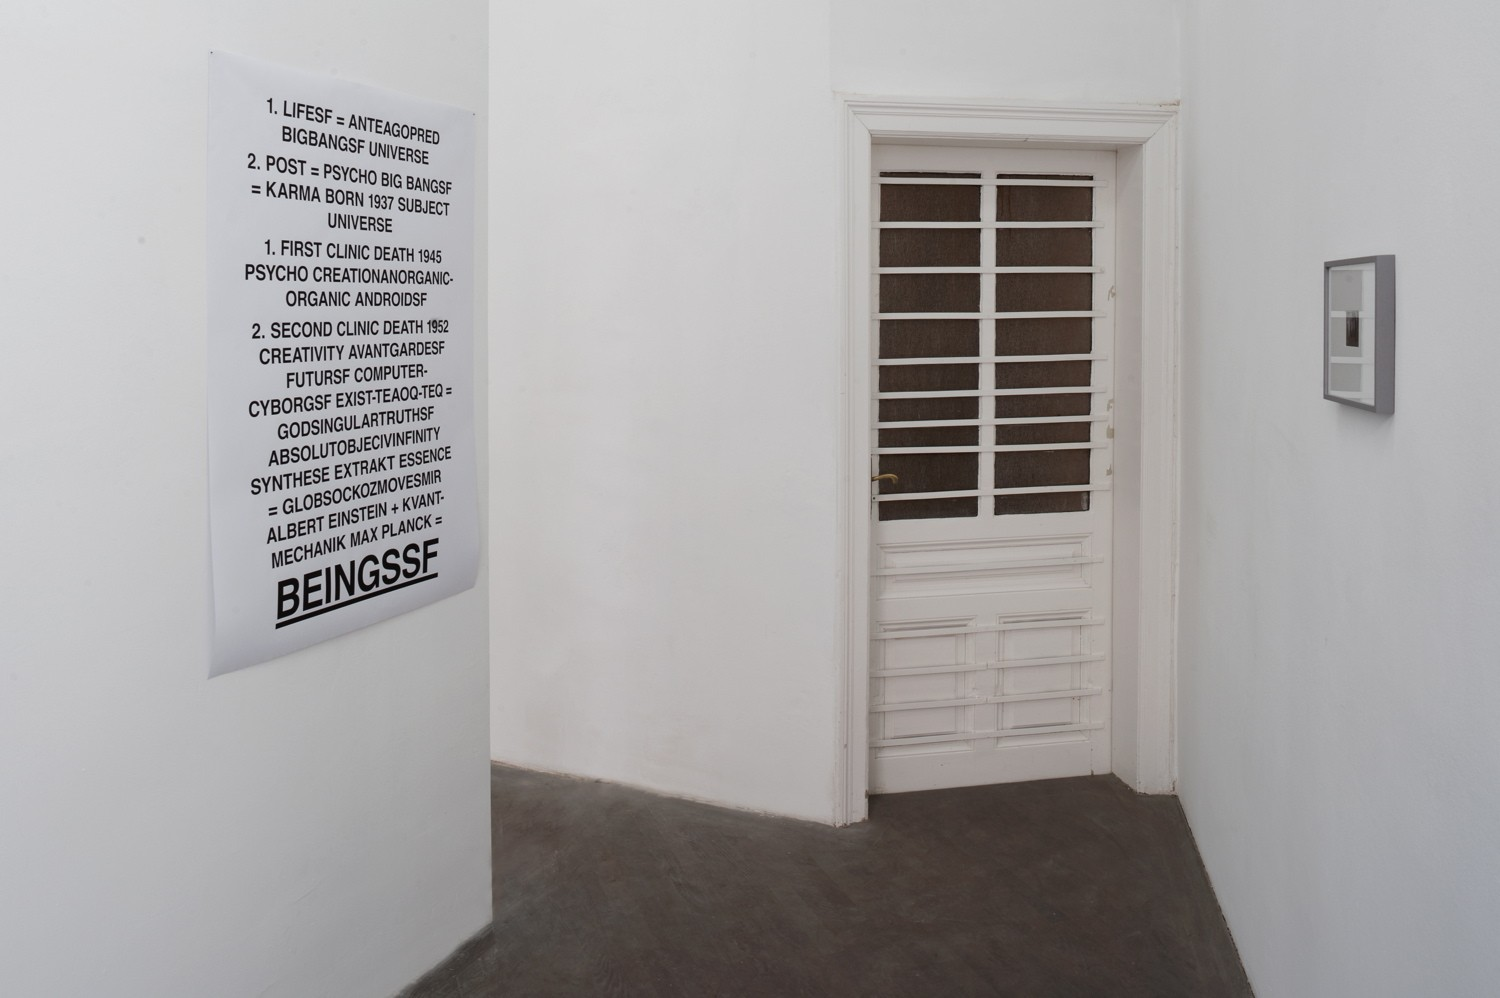 Exhibition View, curated by Severin Dünser & Christian Kobald, 2011, Courtesy: Galerie Emanuel Layr